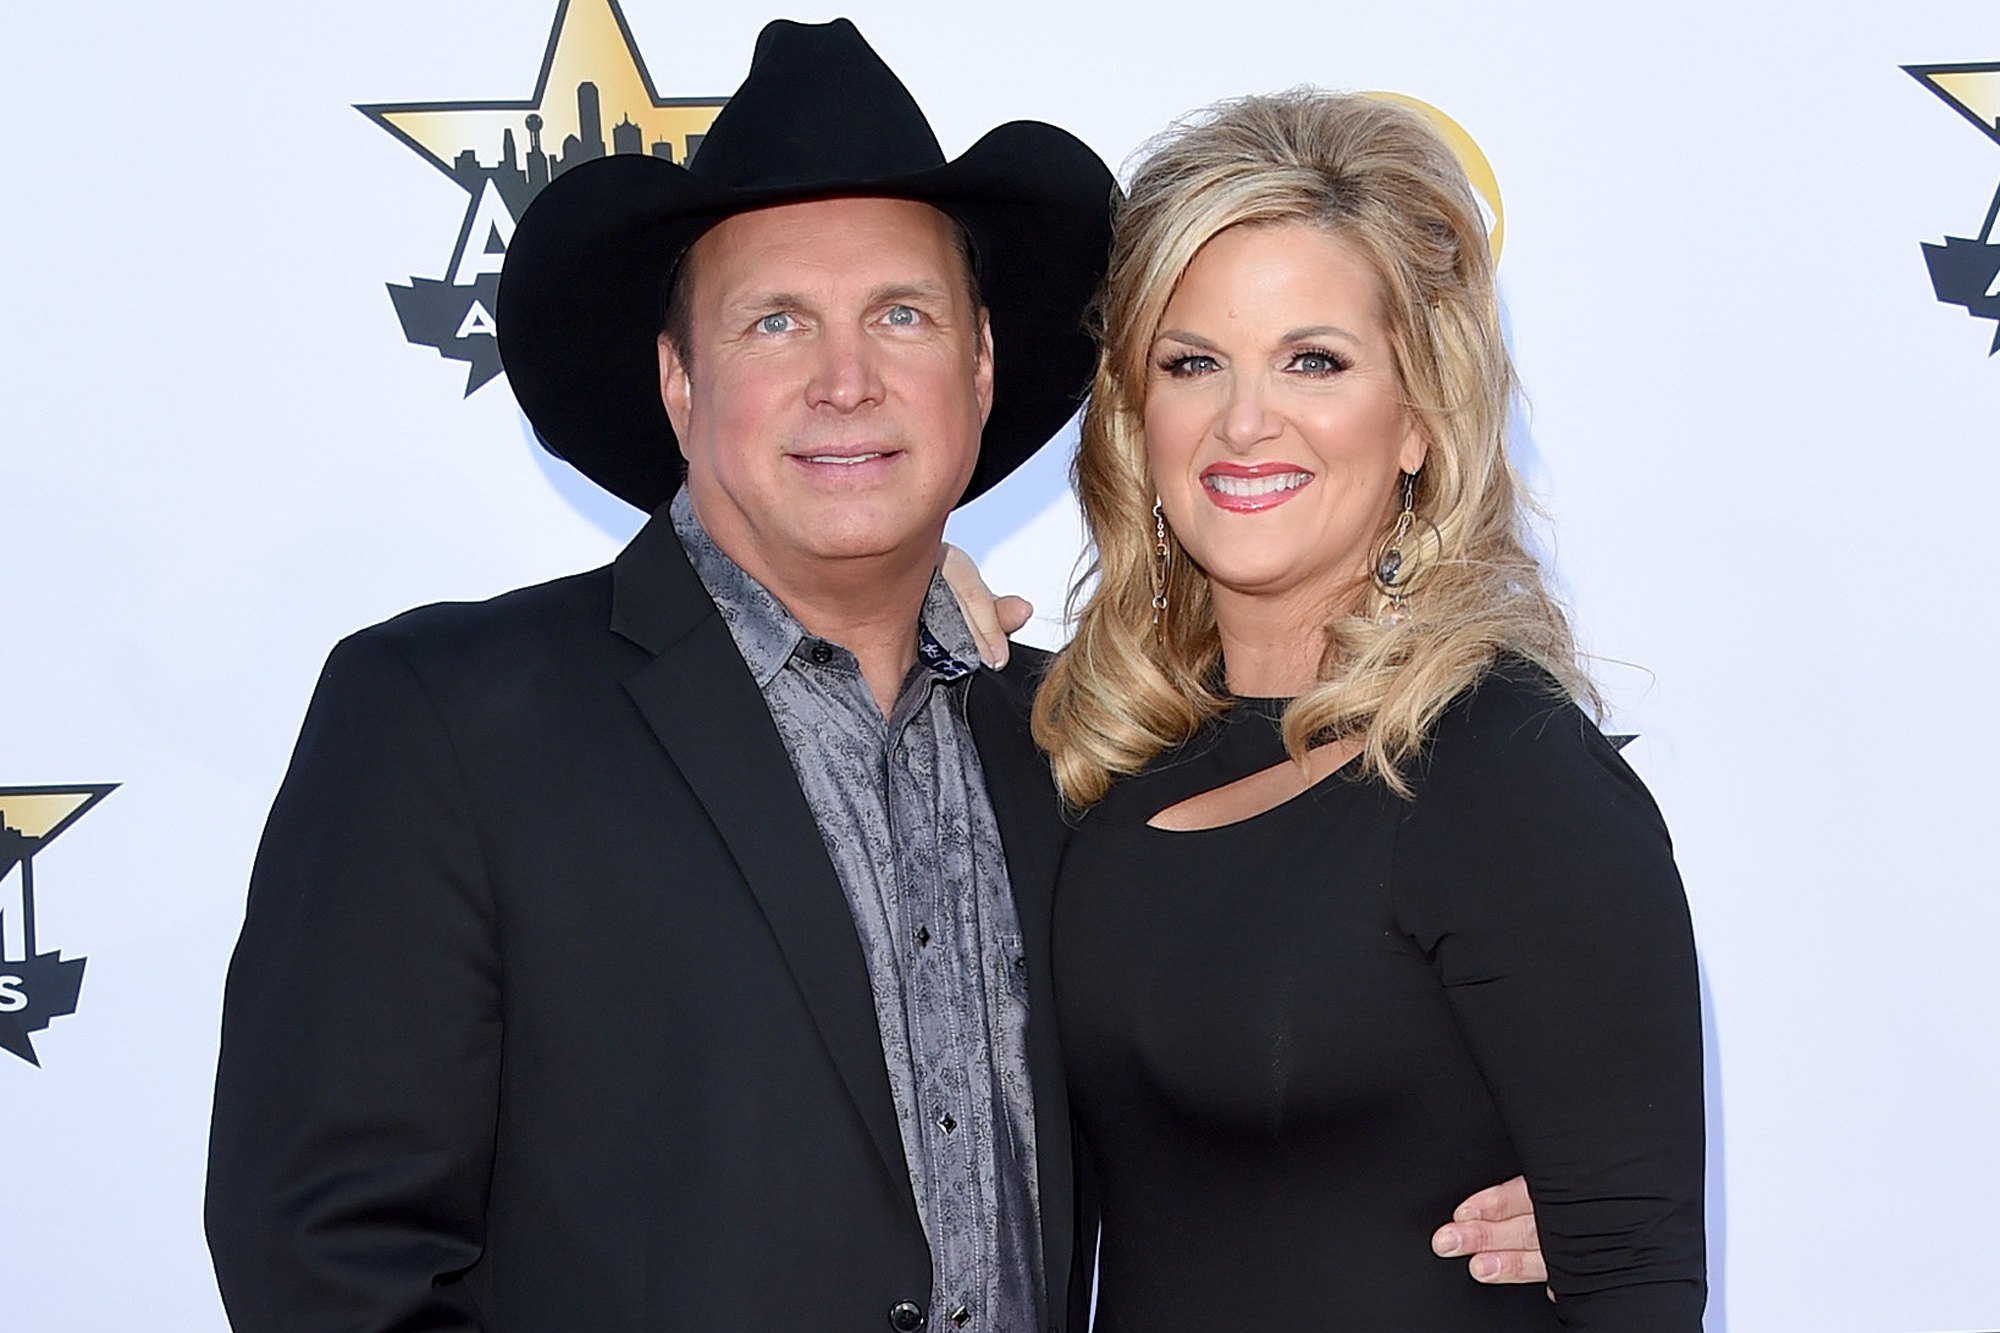 ARLINGTON, TX - APRIL 19: Honoree Garth Brooks (L) and singer Trisha Yearwood attend the 50th Academy of Country Music Awards at AT&T Stadium on April 19, 2015 in Arlington, Texas. (Photo by Jason Merritt/Getty Images)